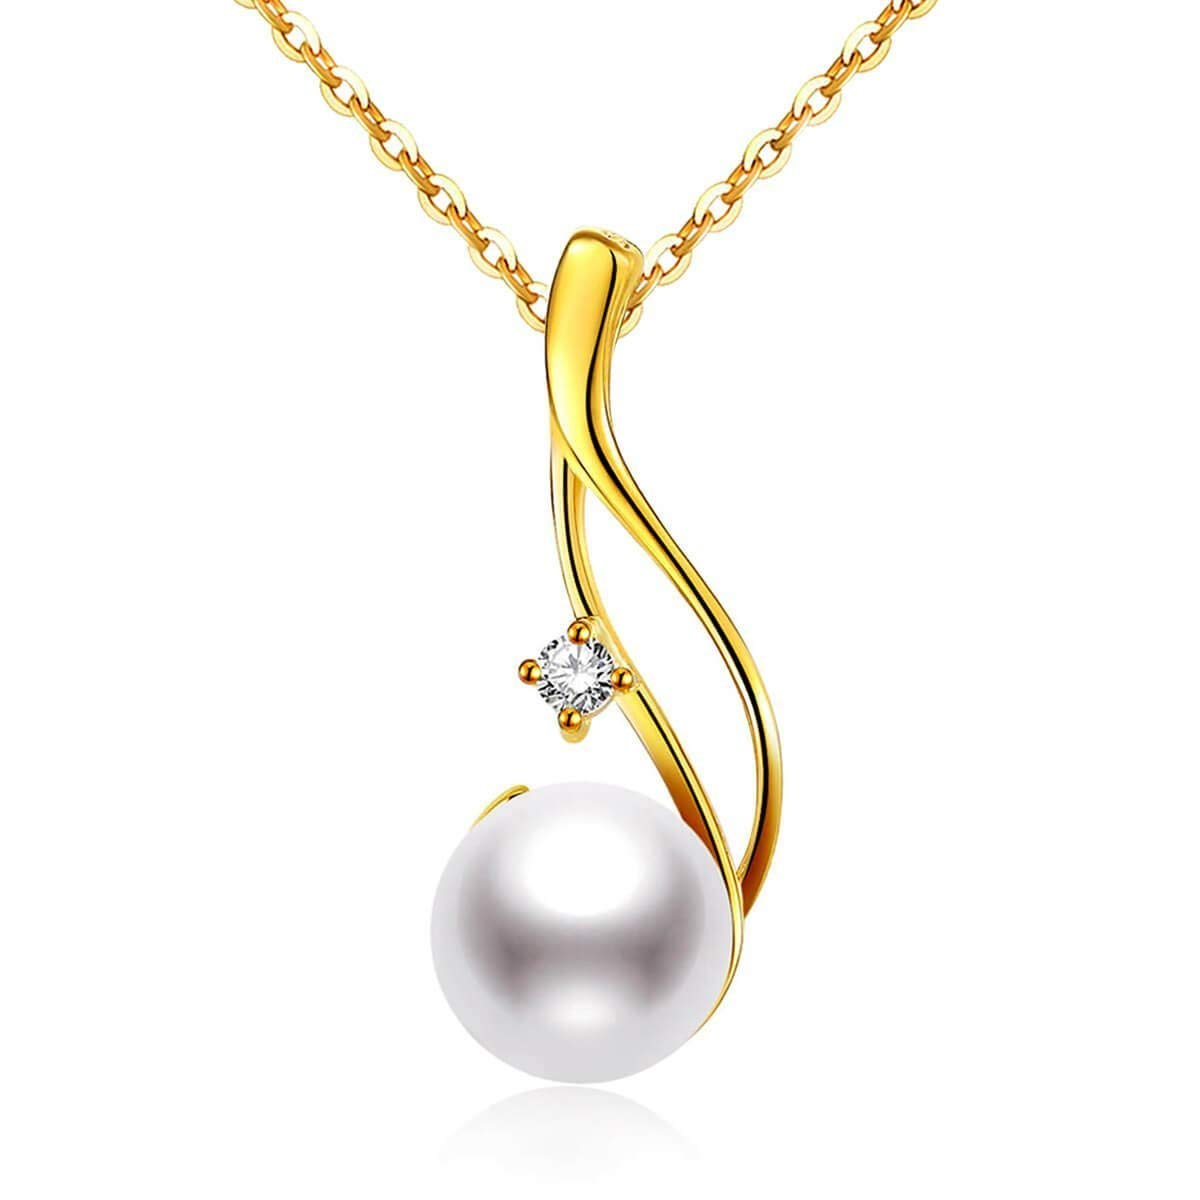 CHAULRI Premium 9-10mm Cultured Freshwater White Pearl Pendant Necklace 18K Gold Plated Sterling Silver gifts for Women for Her Wife Mom Daughter (Yellow, gold-plated-silver)